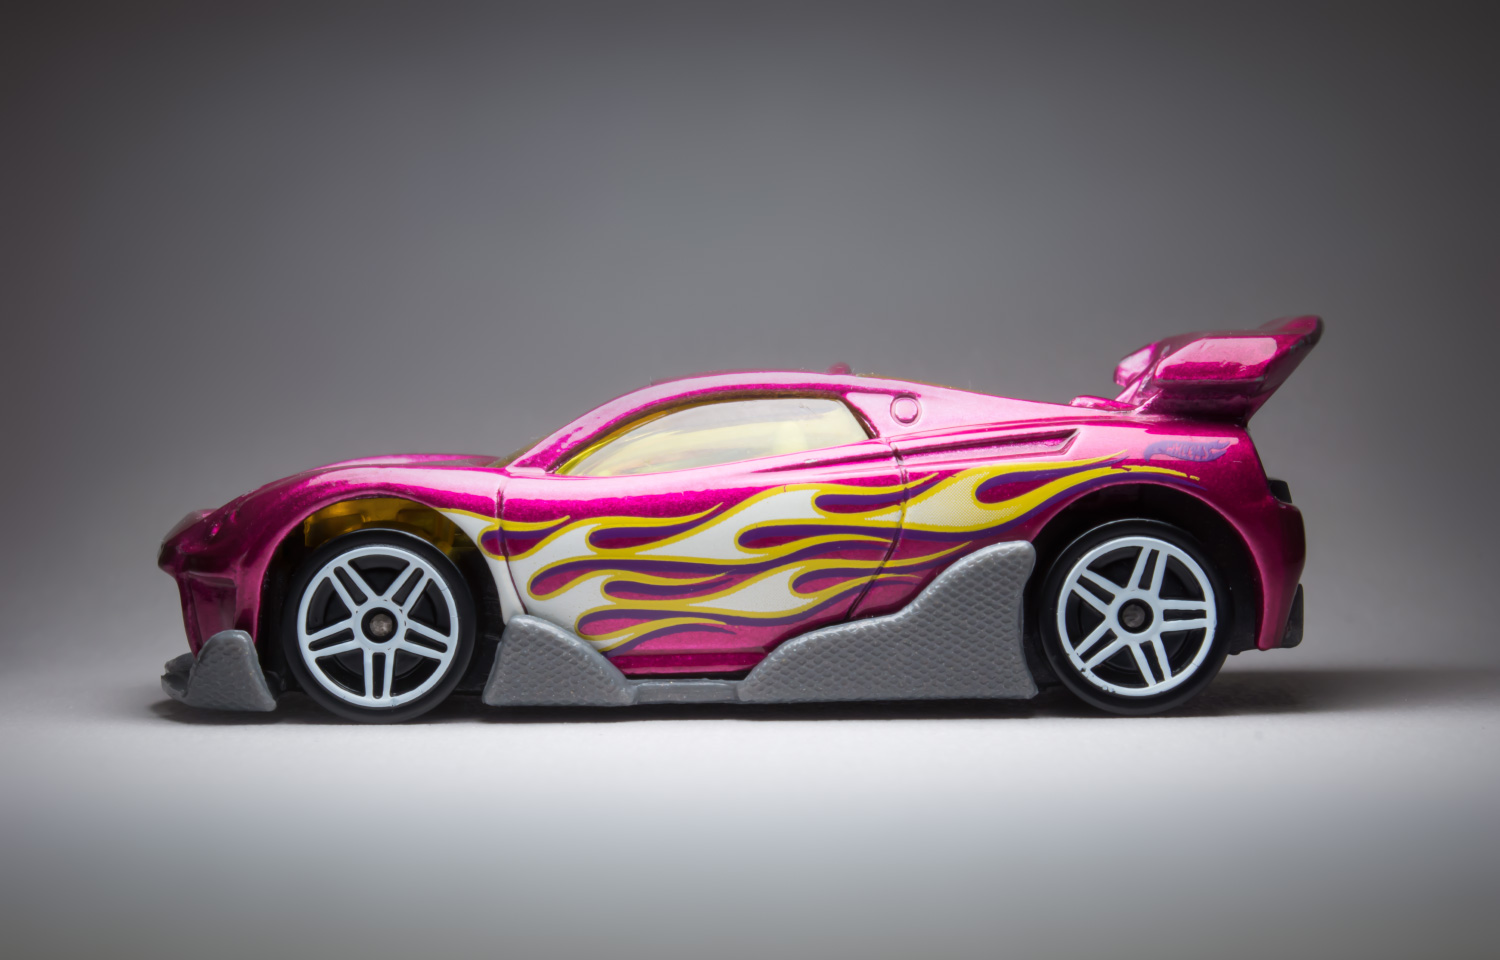 Hot Wheel car